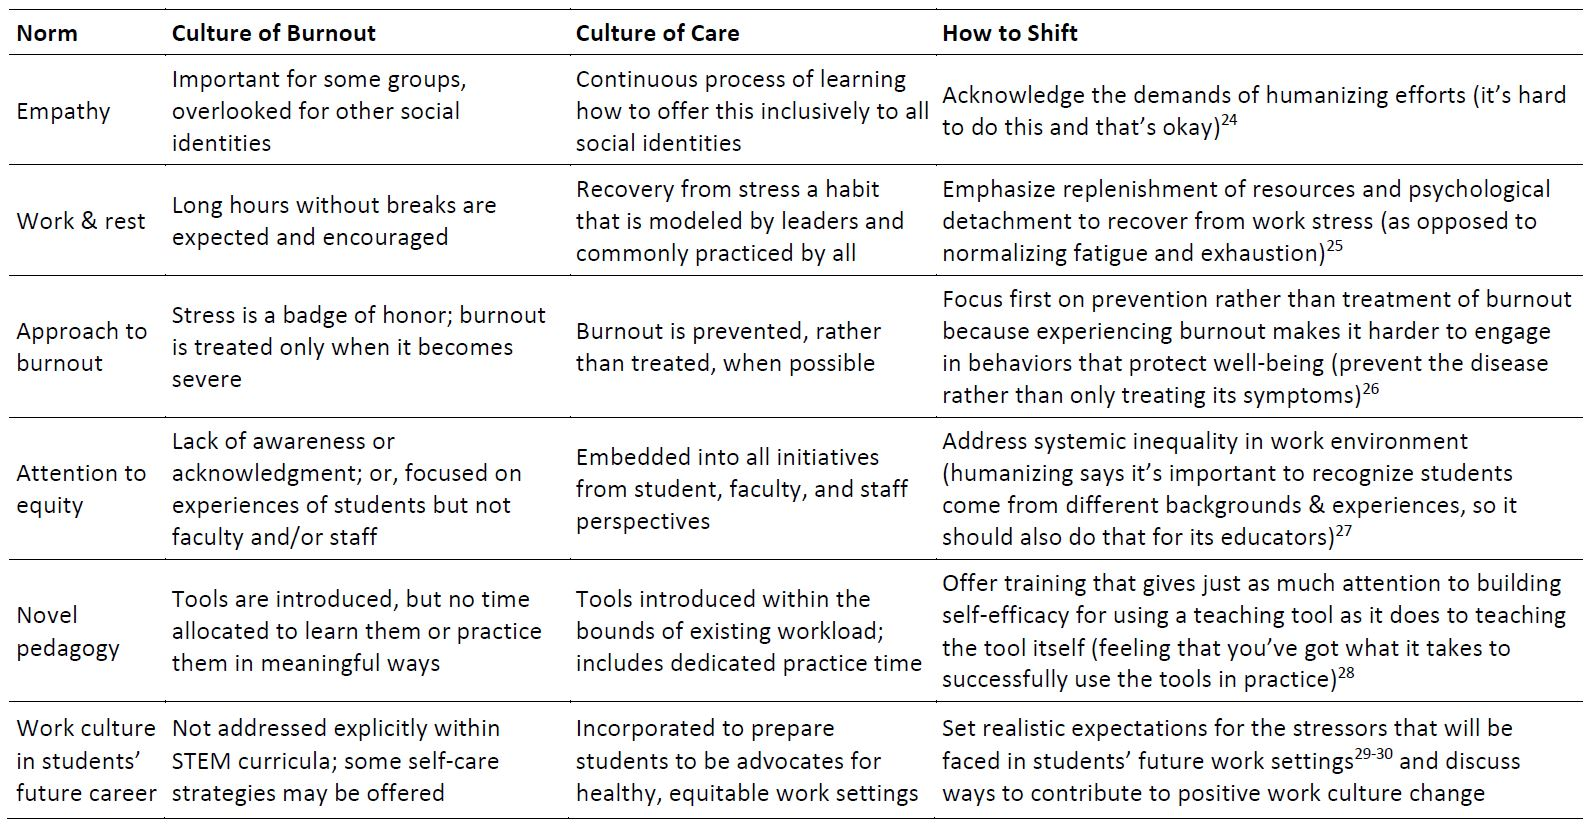 Table 1: Features of a Culture of Burnout Versus a Culture of Care (Click to access the PDF)